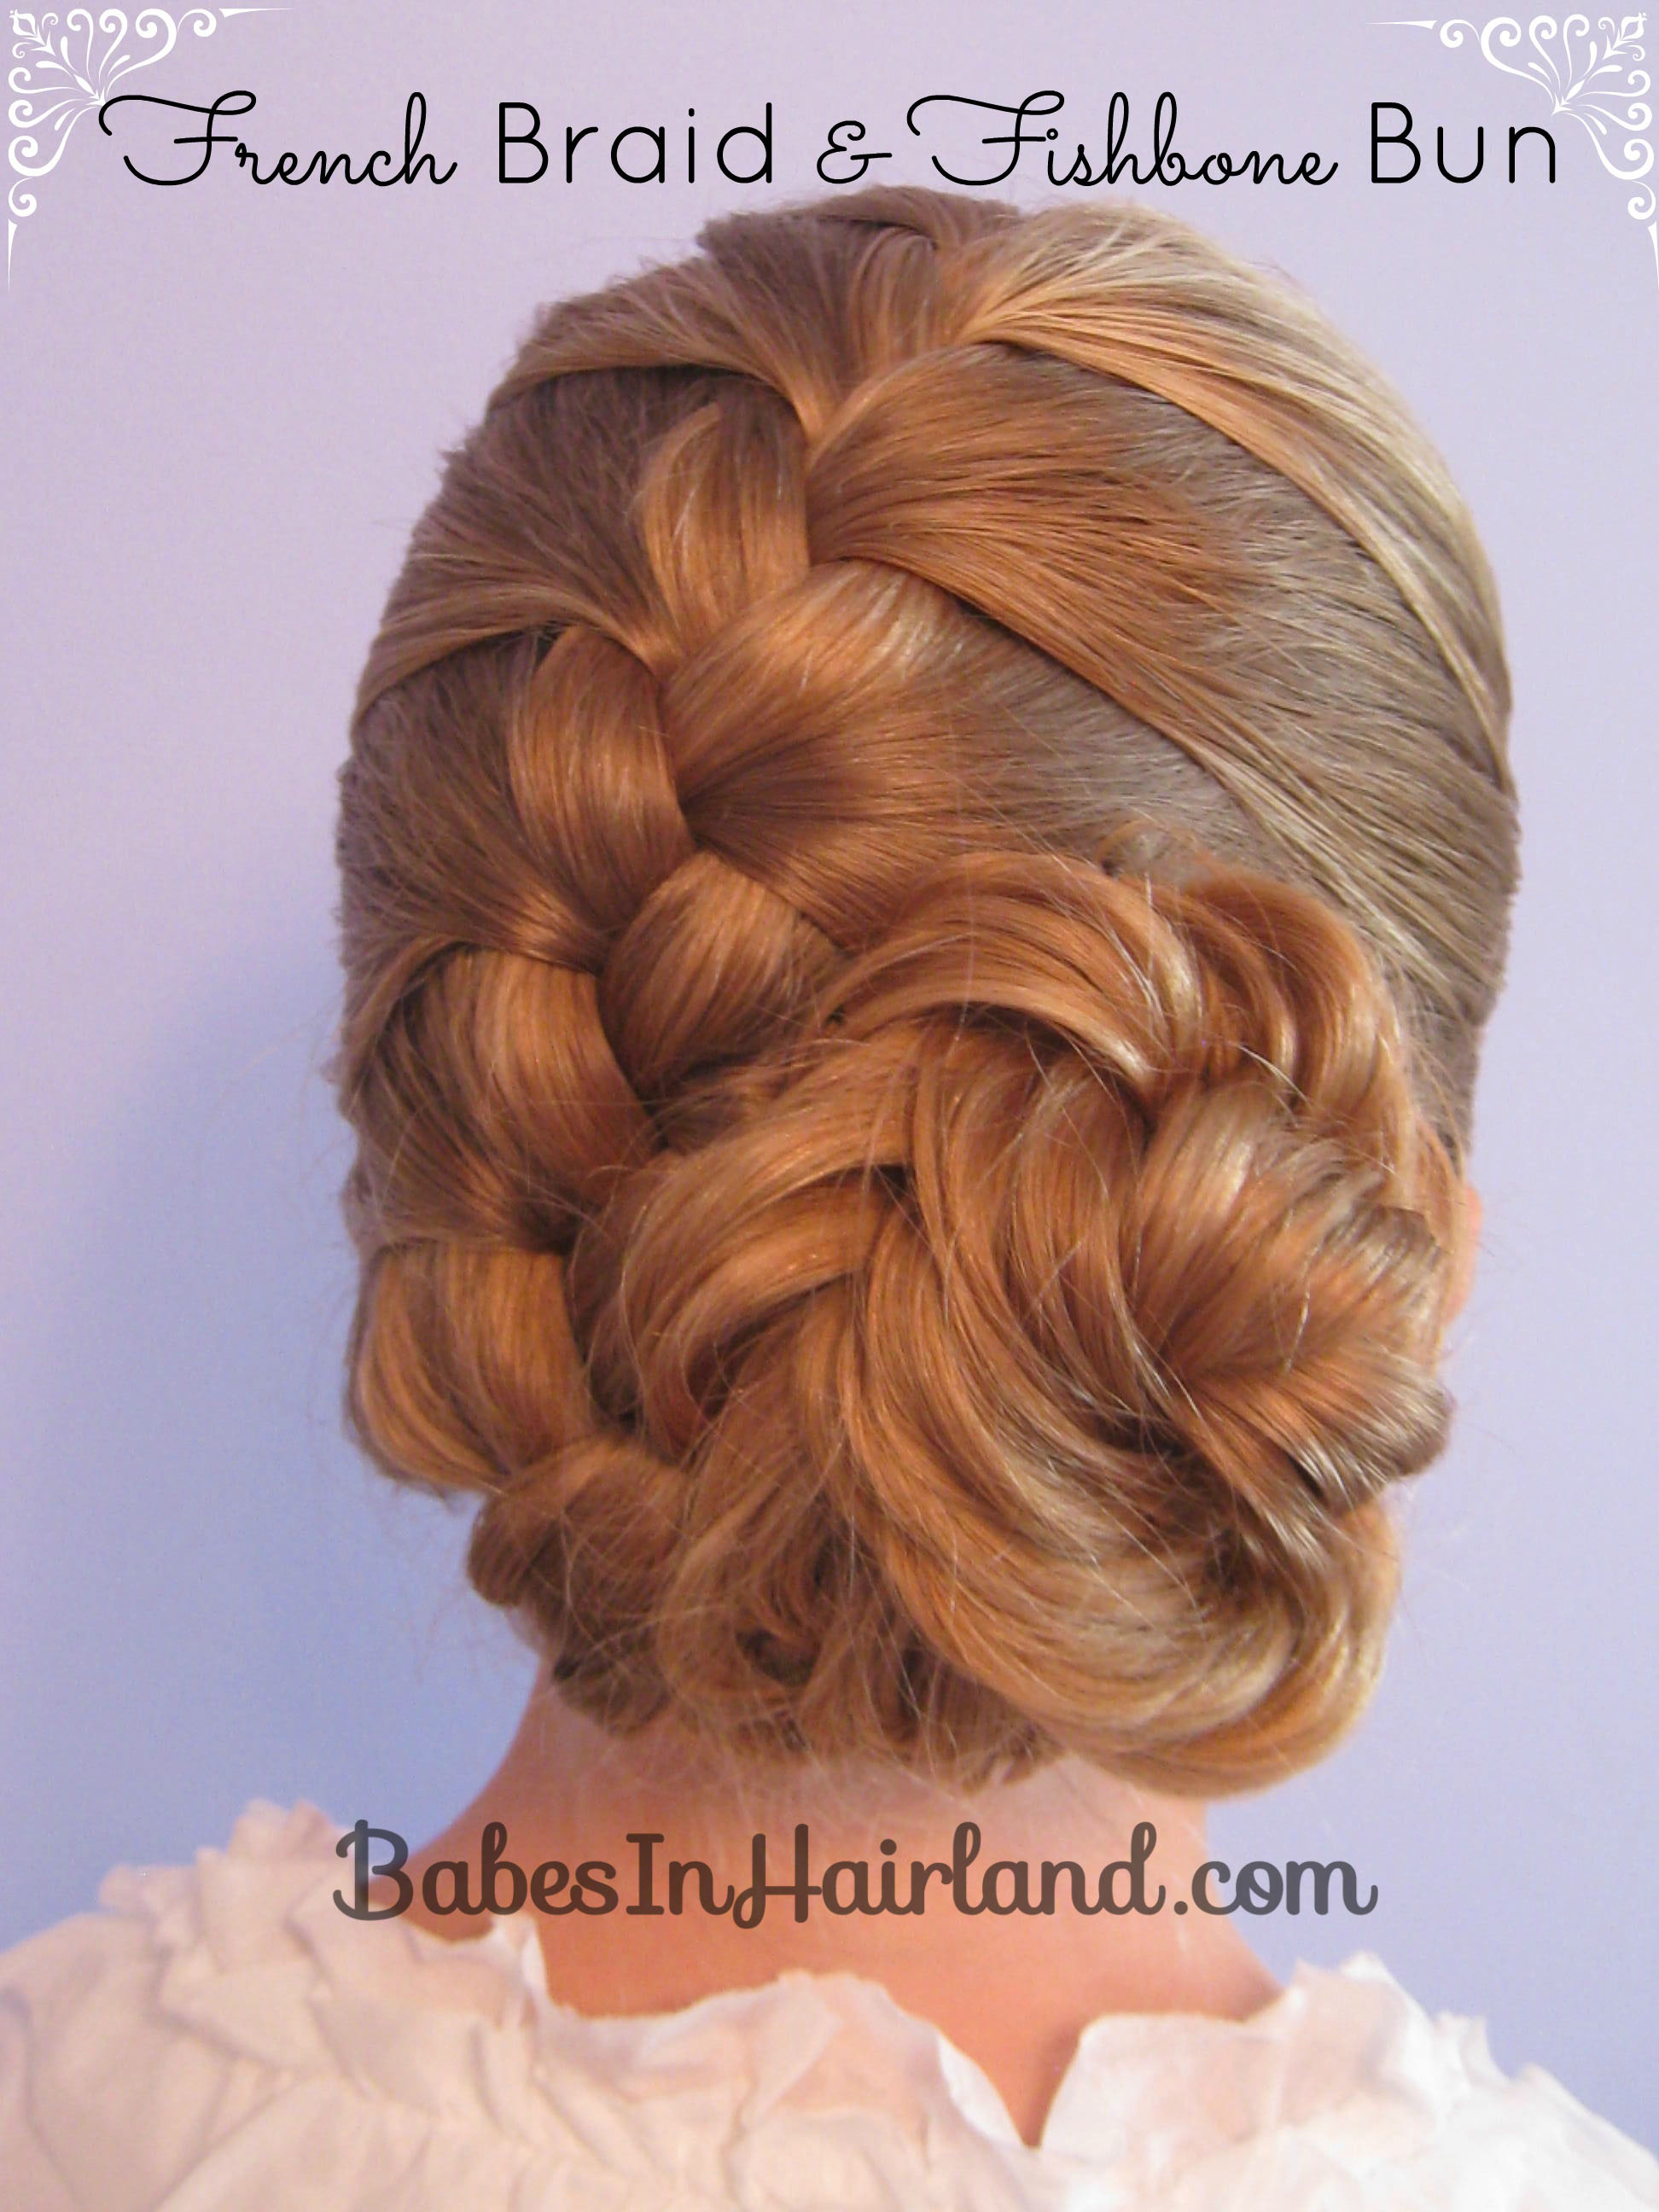 Remarkable French Braid Back Into Bun Braids Hairstyles For Men Maxibearus